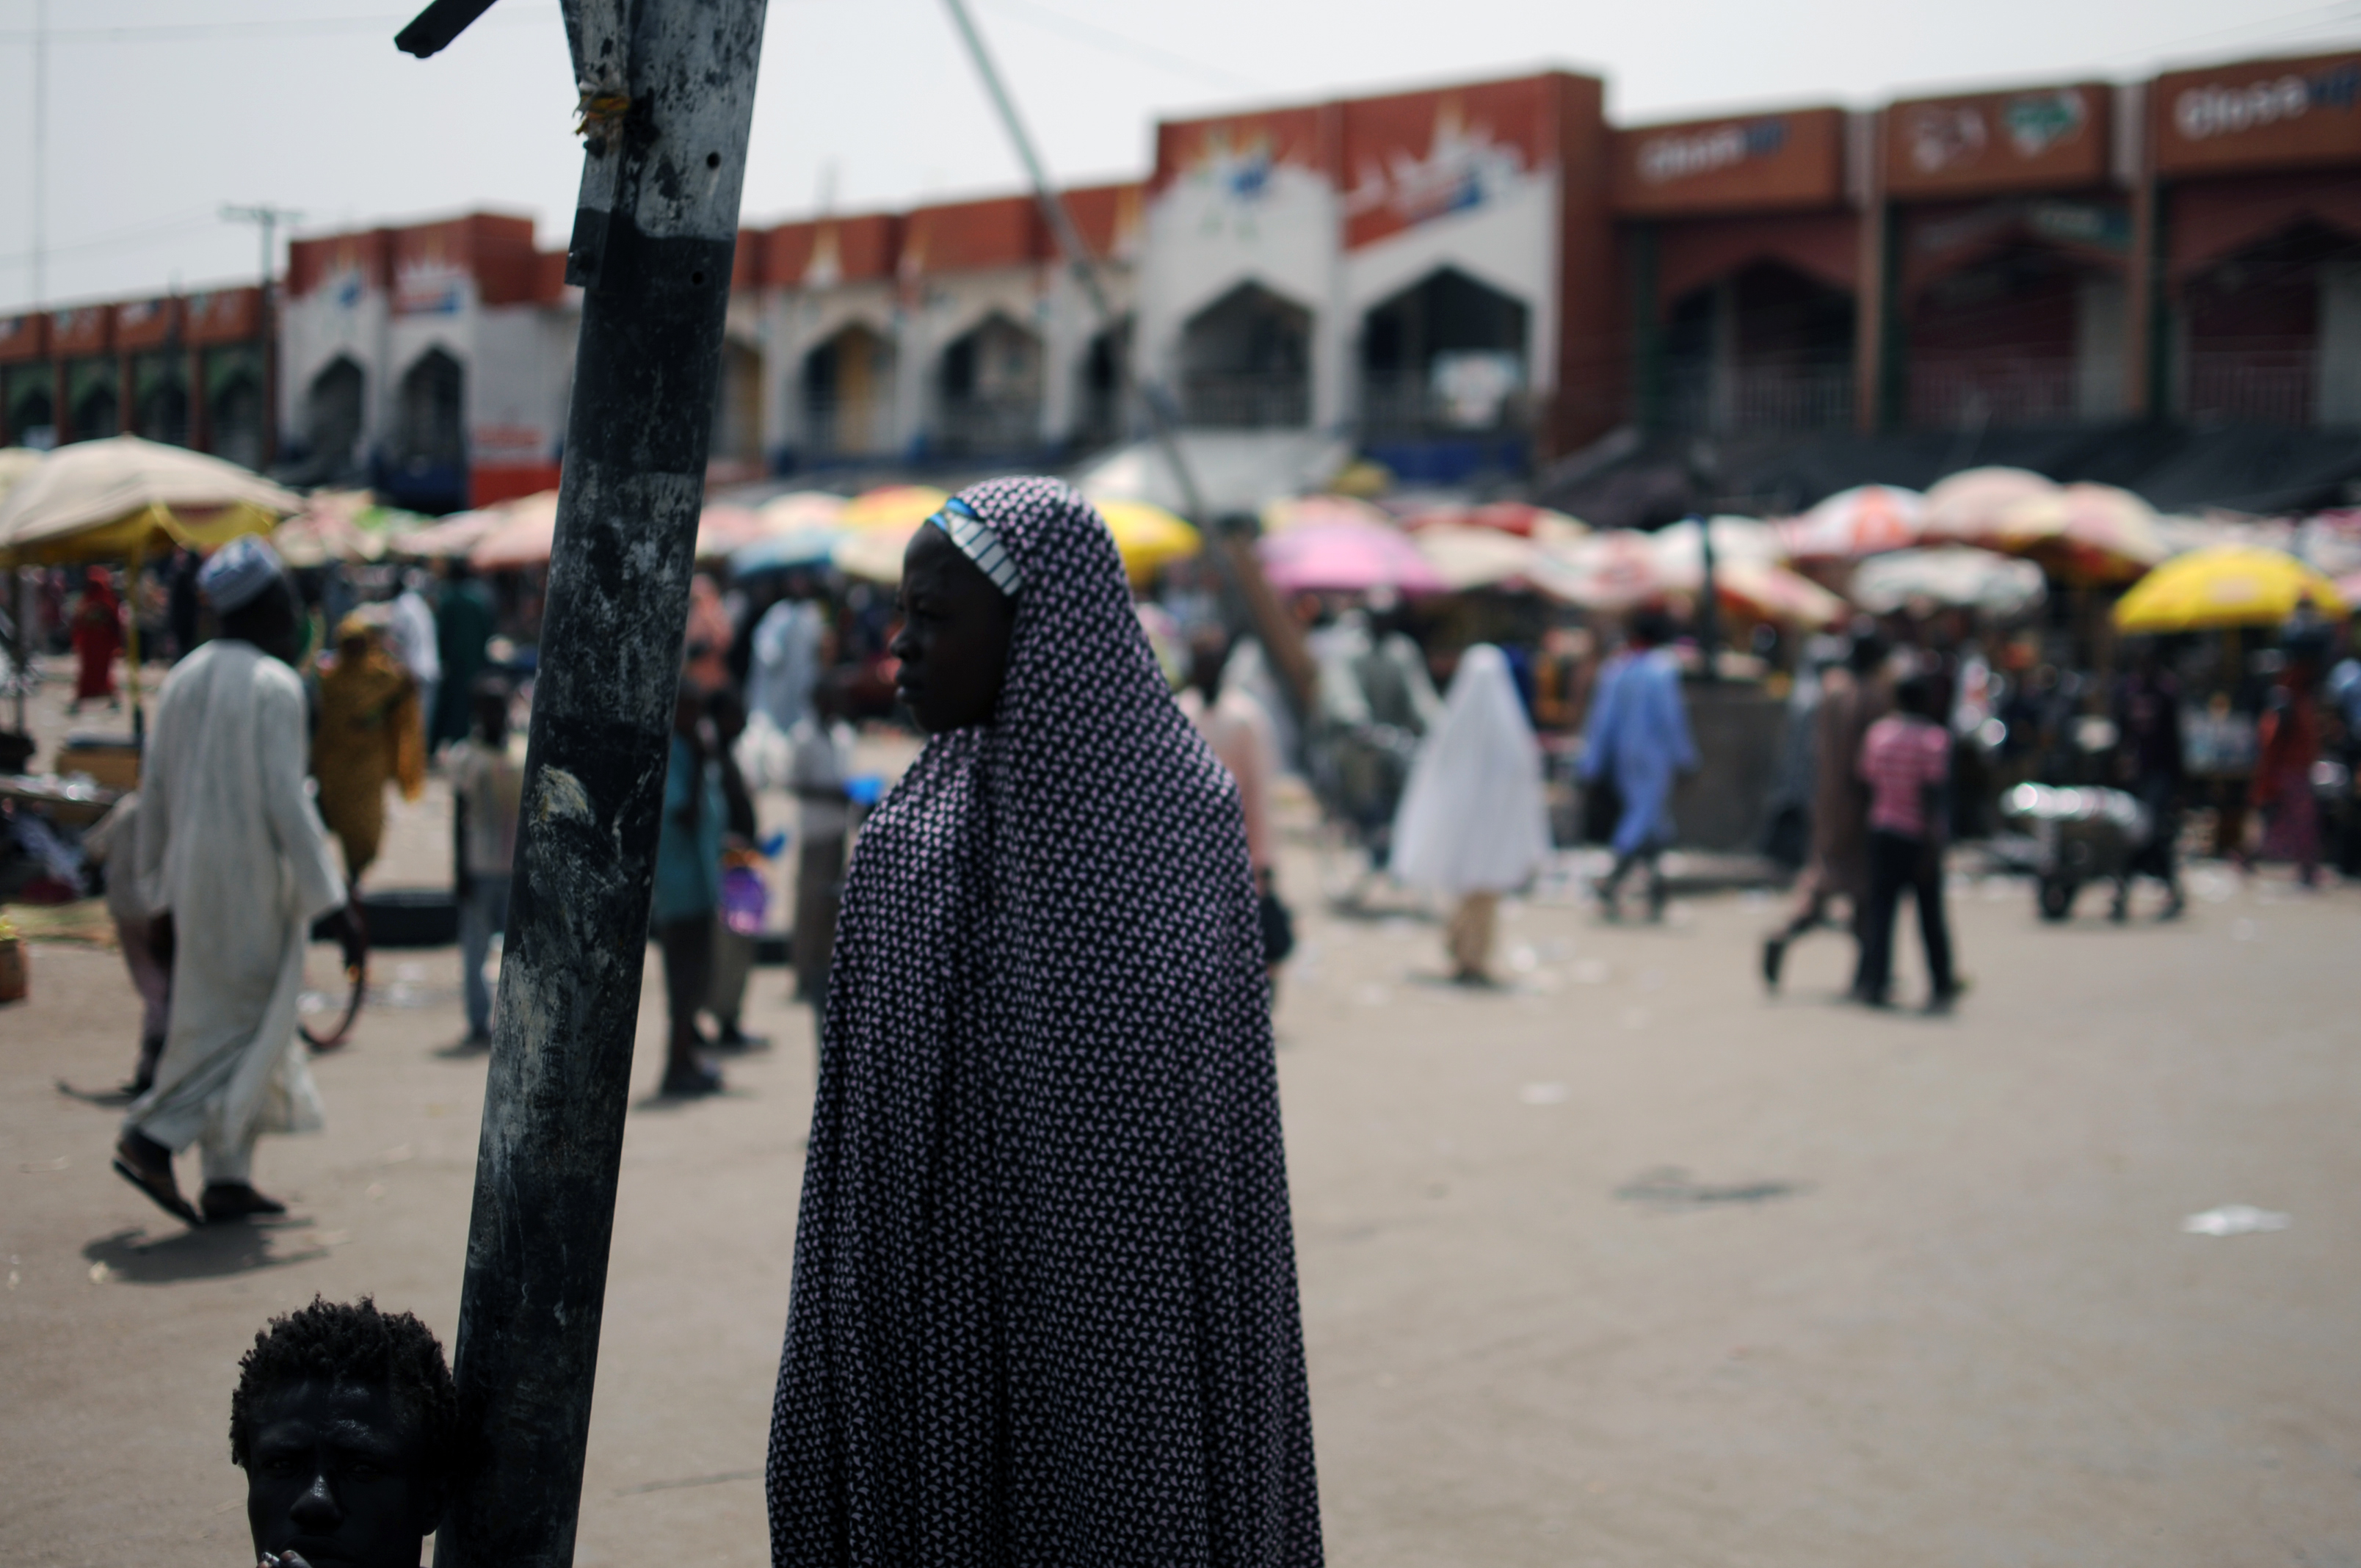 A woman stands at the market  in Maiduguri, the capital of Borno state, Nigeria, on June 6, 2013